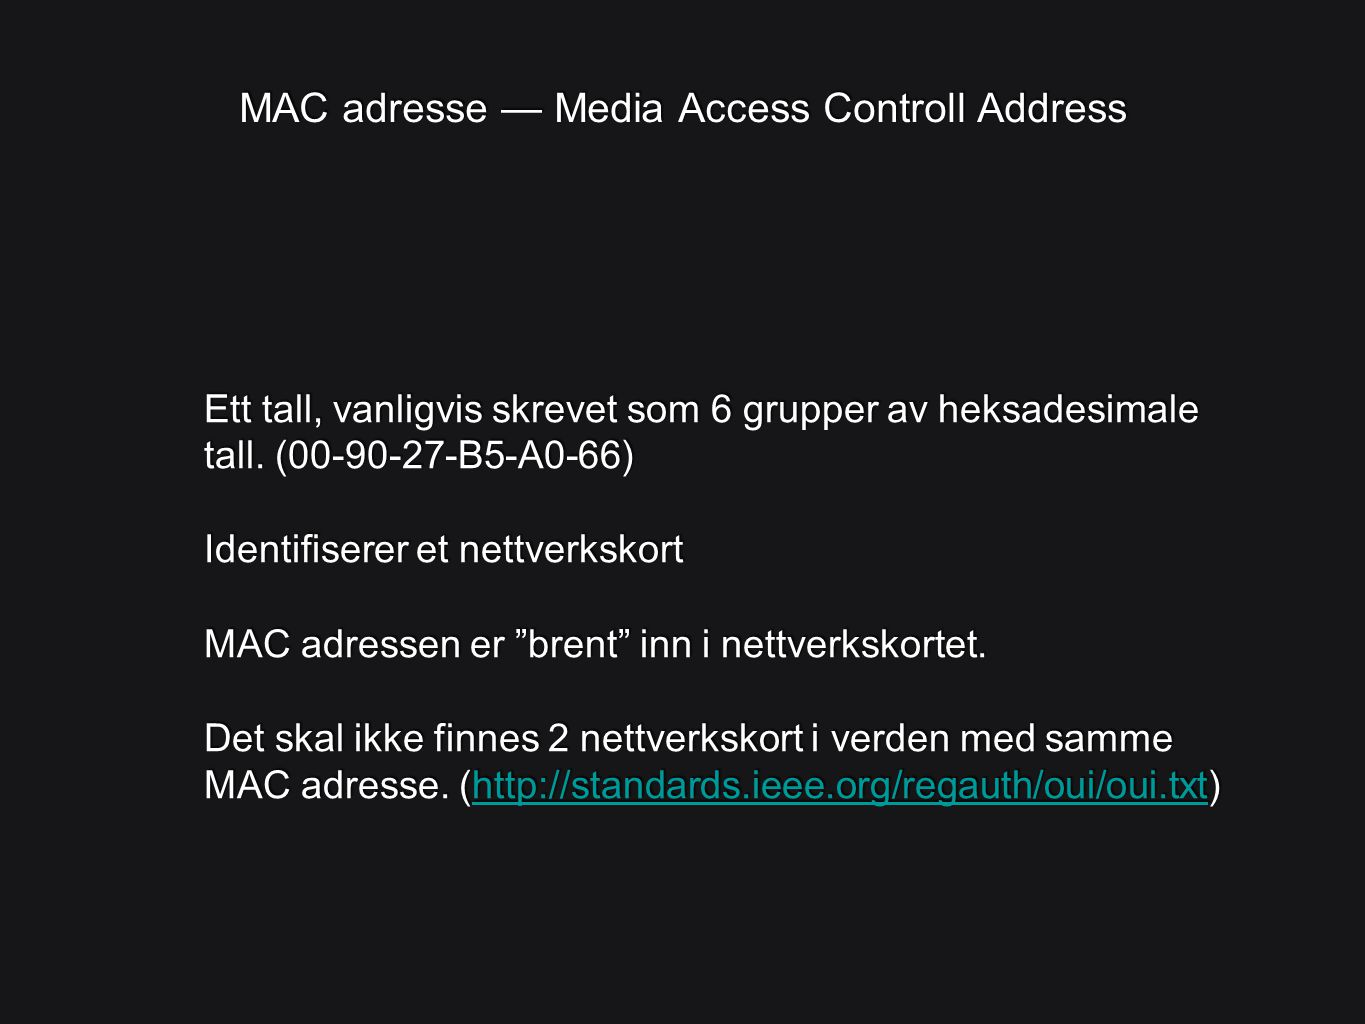 MAC adresse — Media Access Controll Address